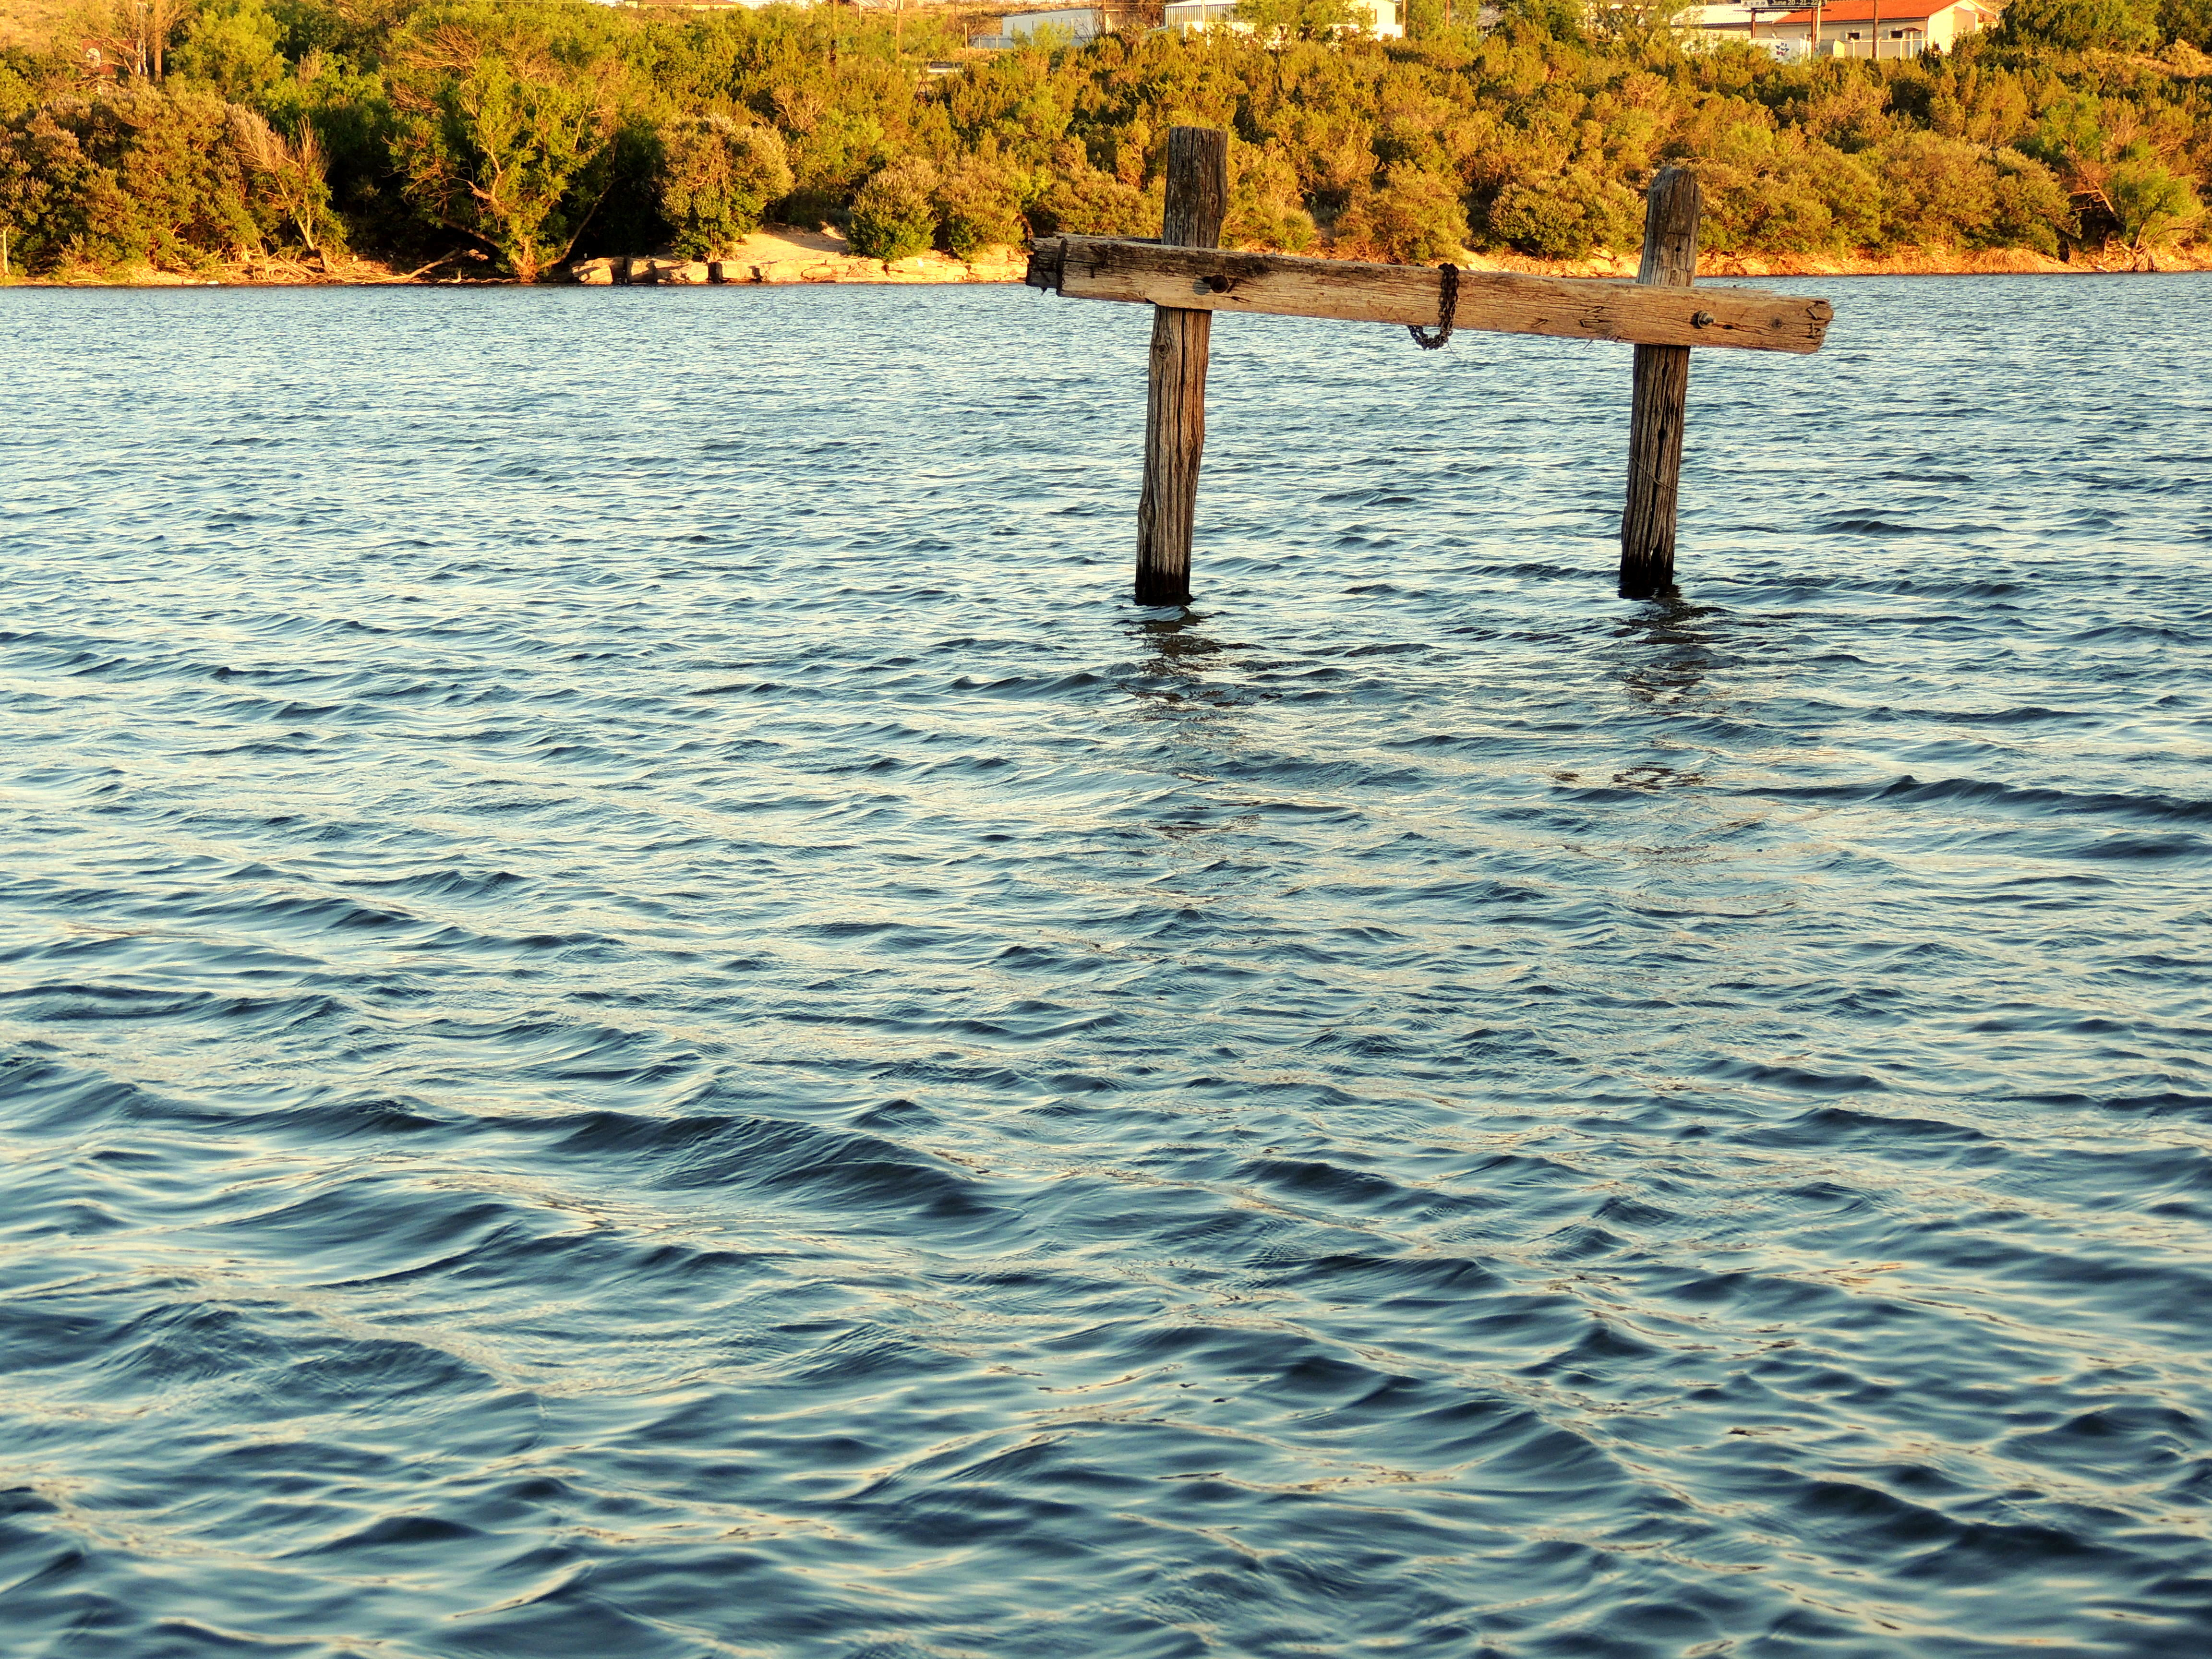 Wooden structure in water at Big Spring.jpg